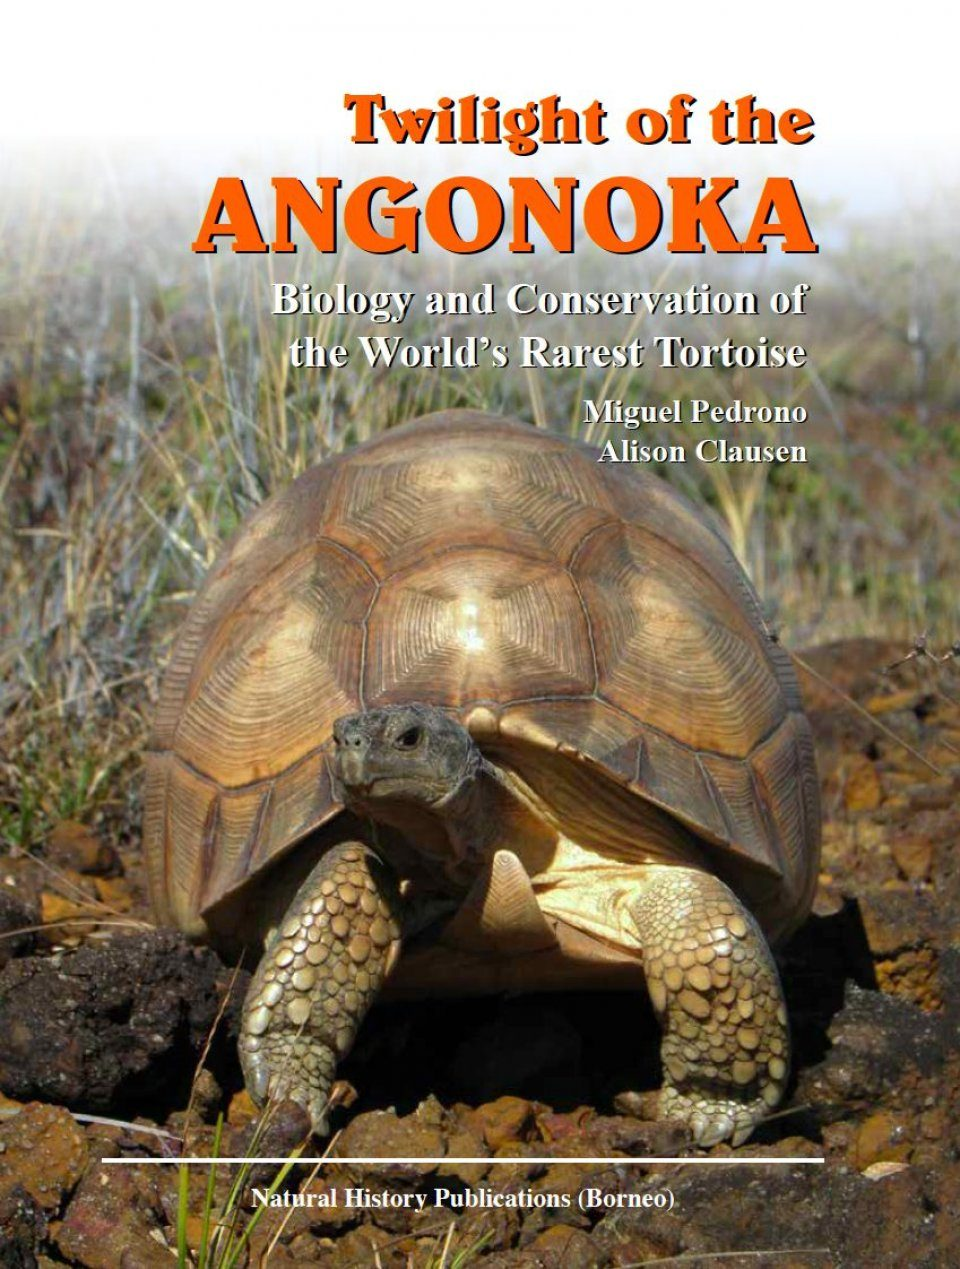 Twilight of the Angonoka